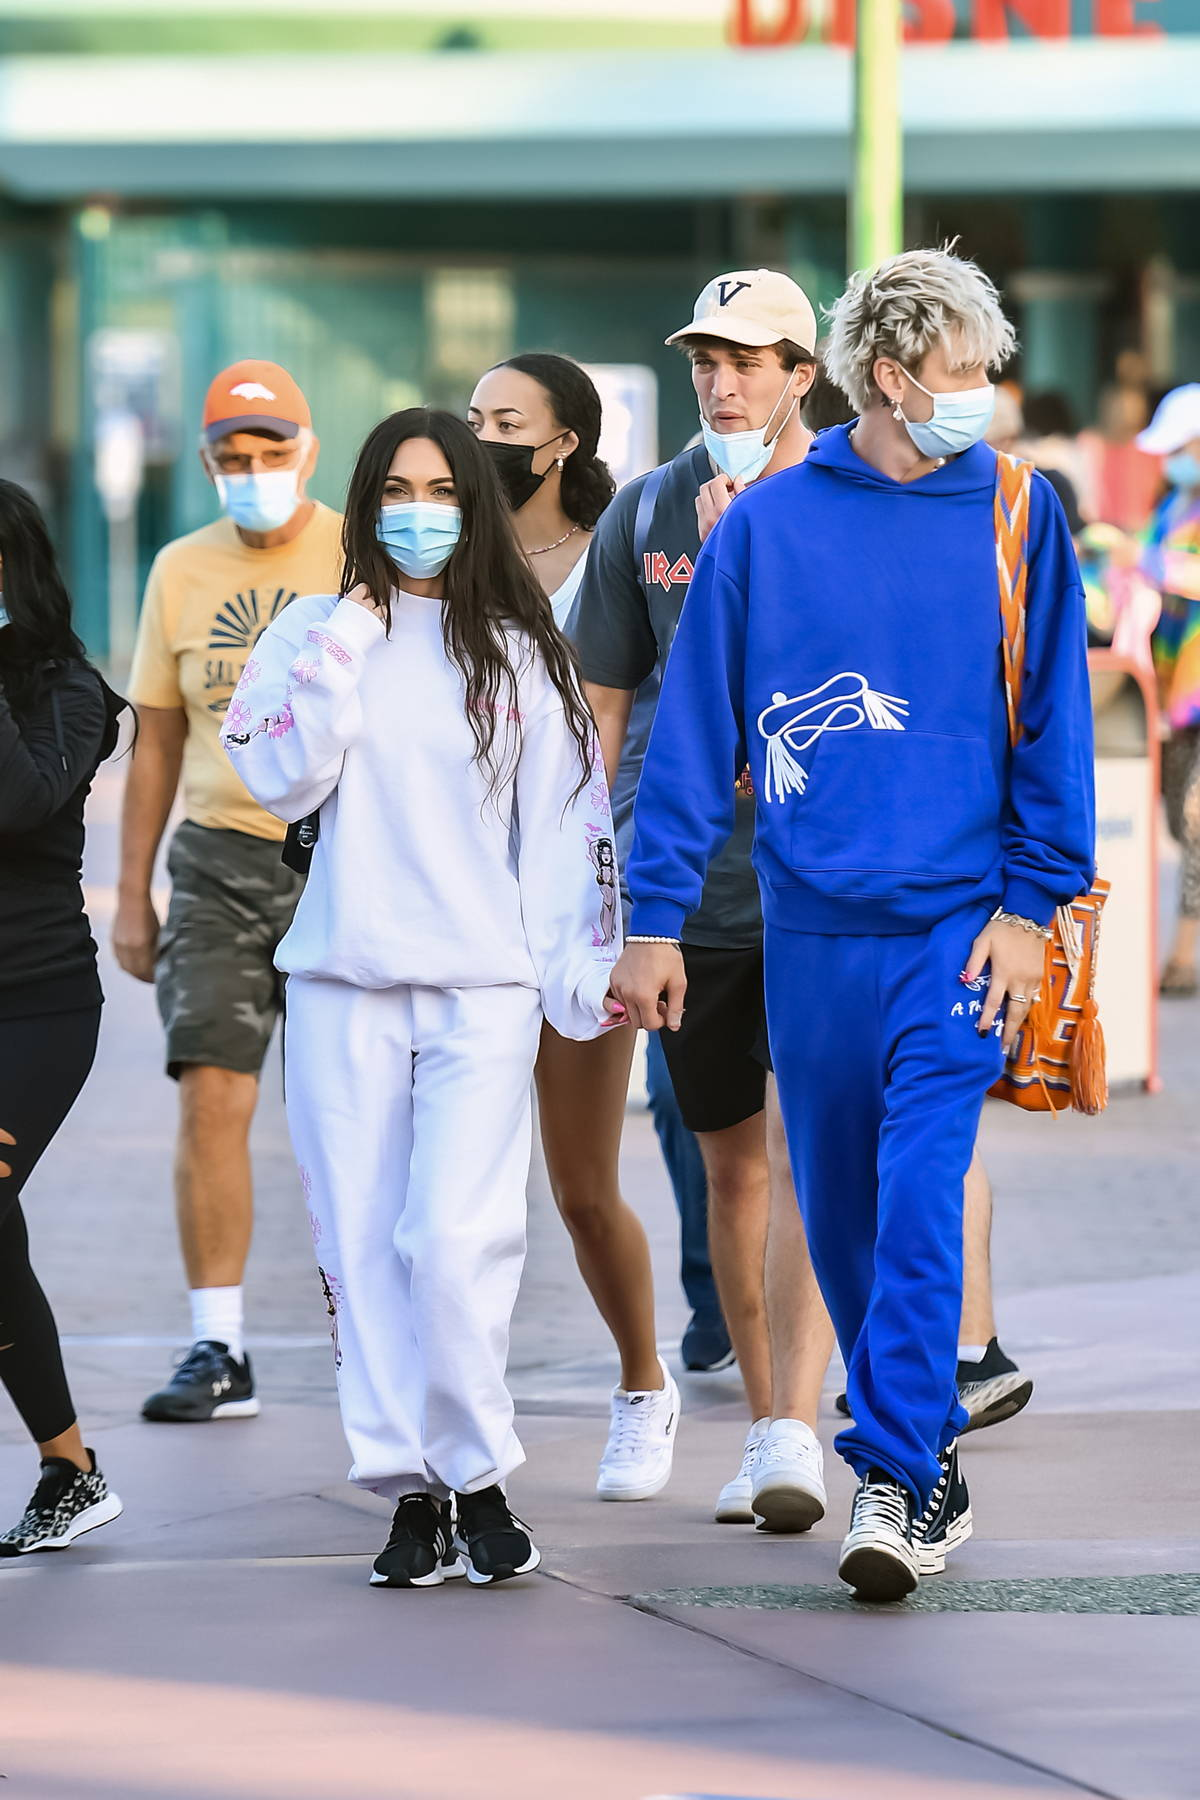 Megan Fox and Machine Gun Kelly enjoy a day out with friends and family at Disneyland in Anaheim, California